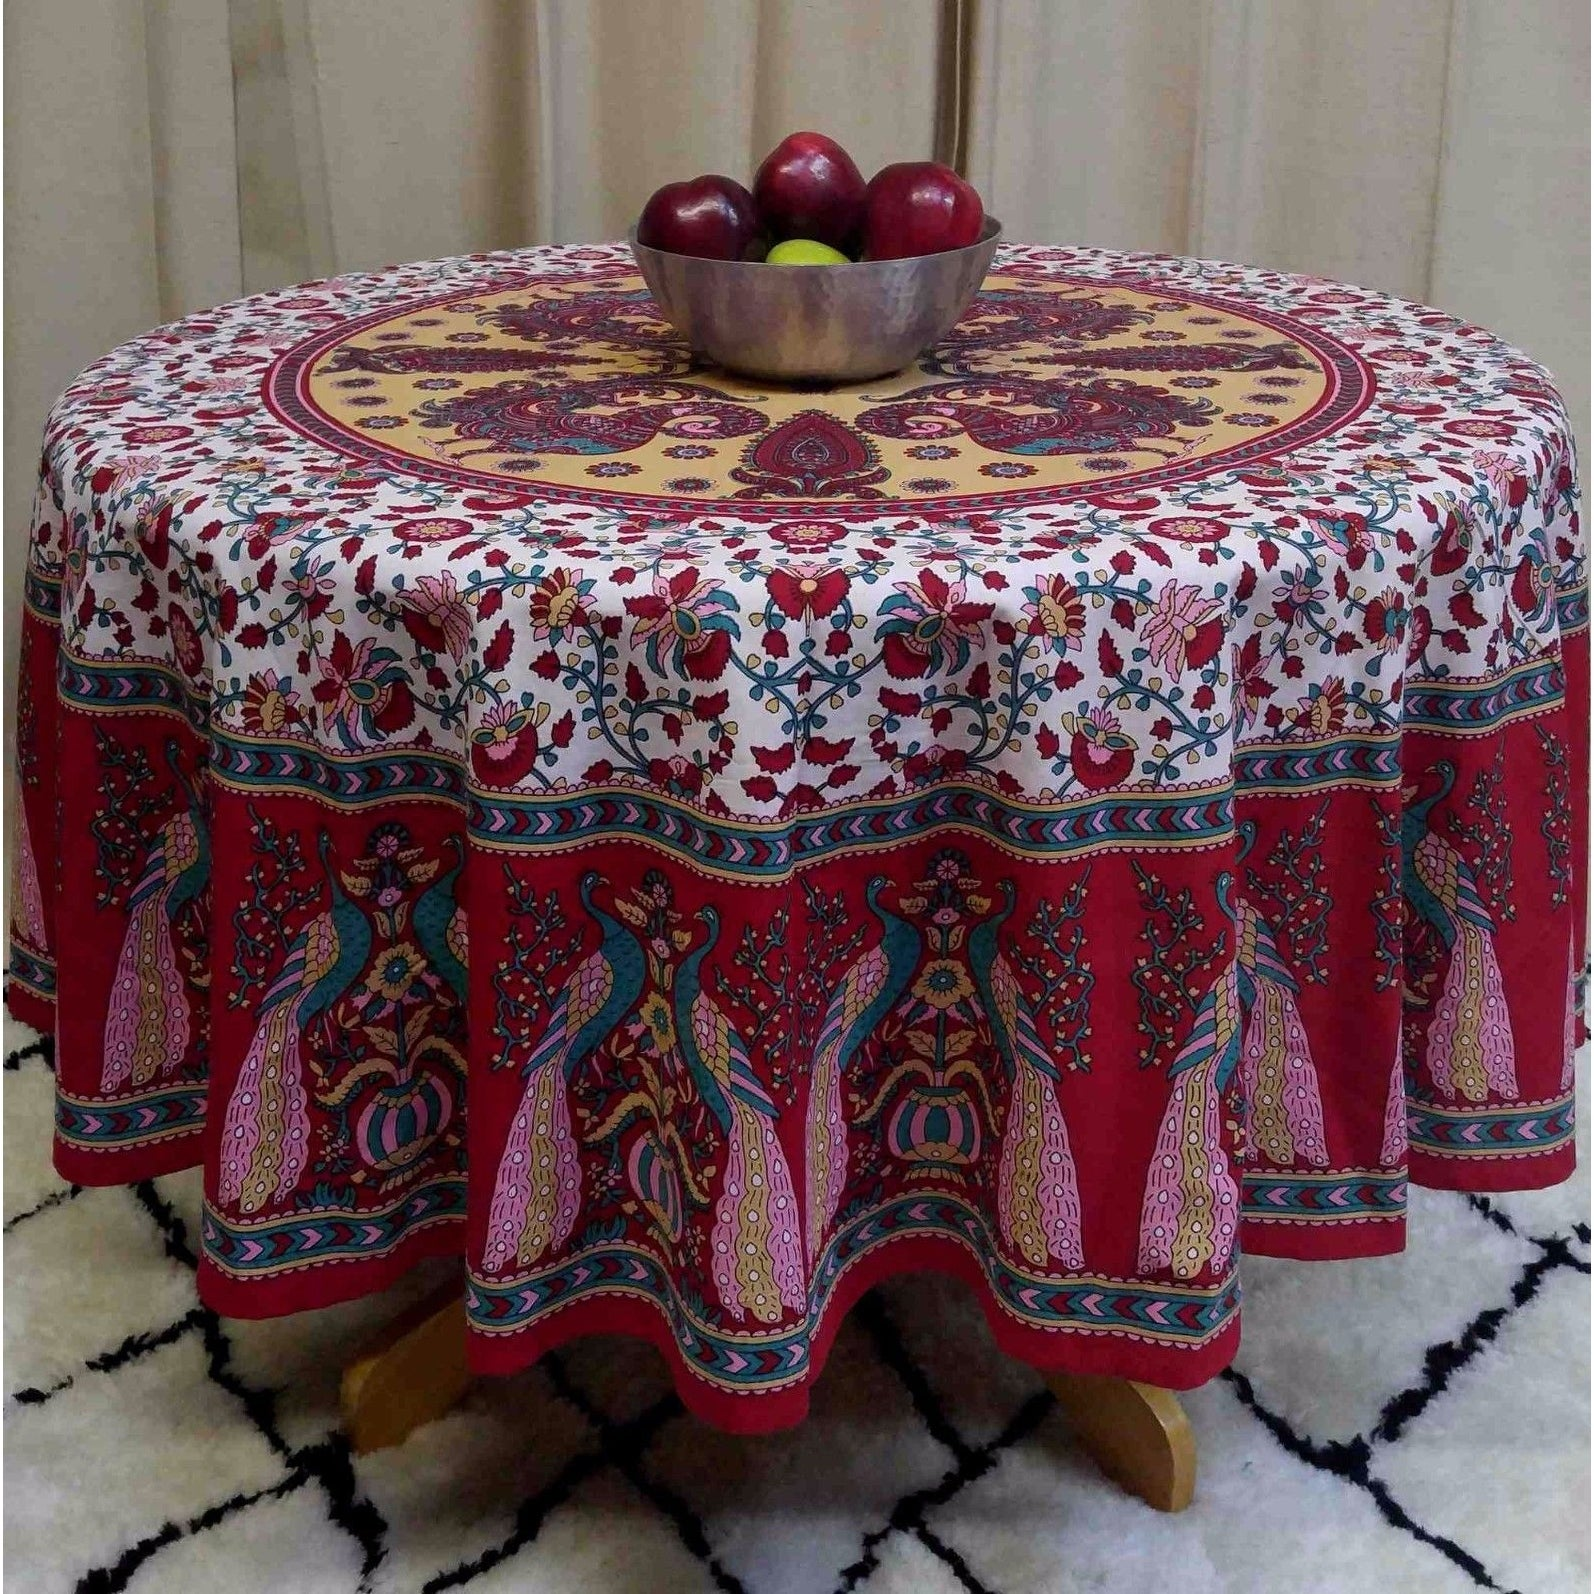 Cotton Peacock Floral Tablecloth Round Blue Green Red Tan - 72 Inches - Thumbnail 3